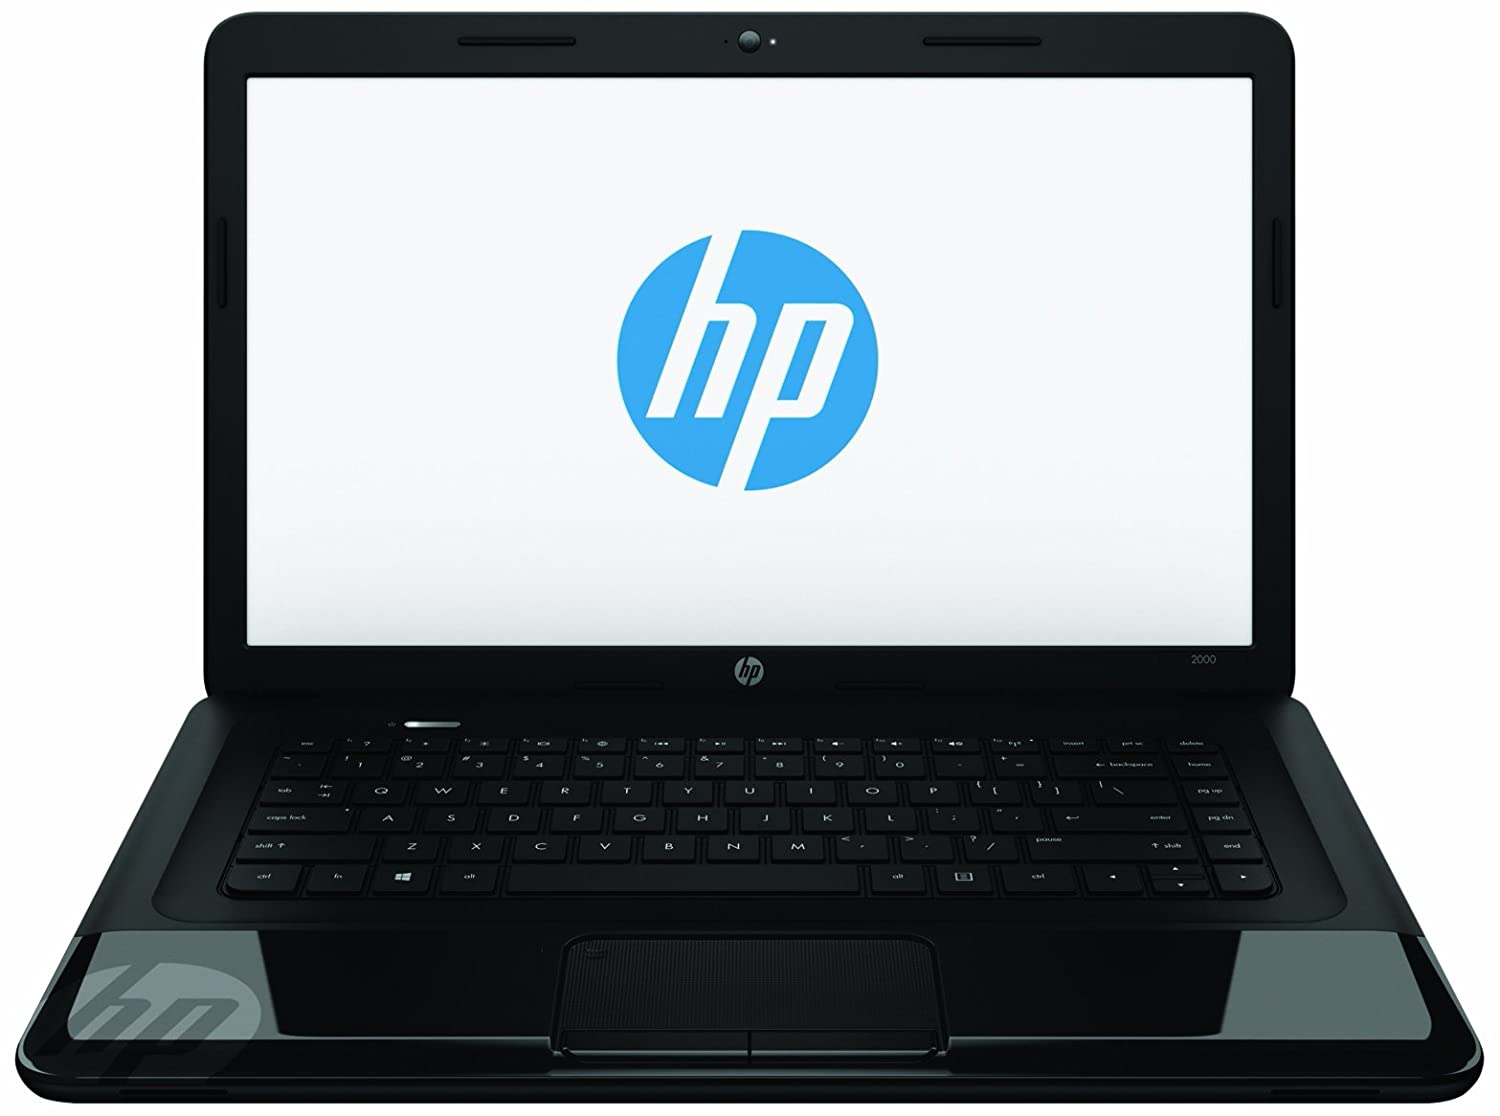 HP 2000-2d80nr 15.6-Inch Laptop